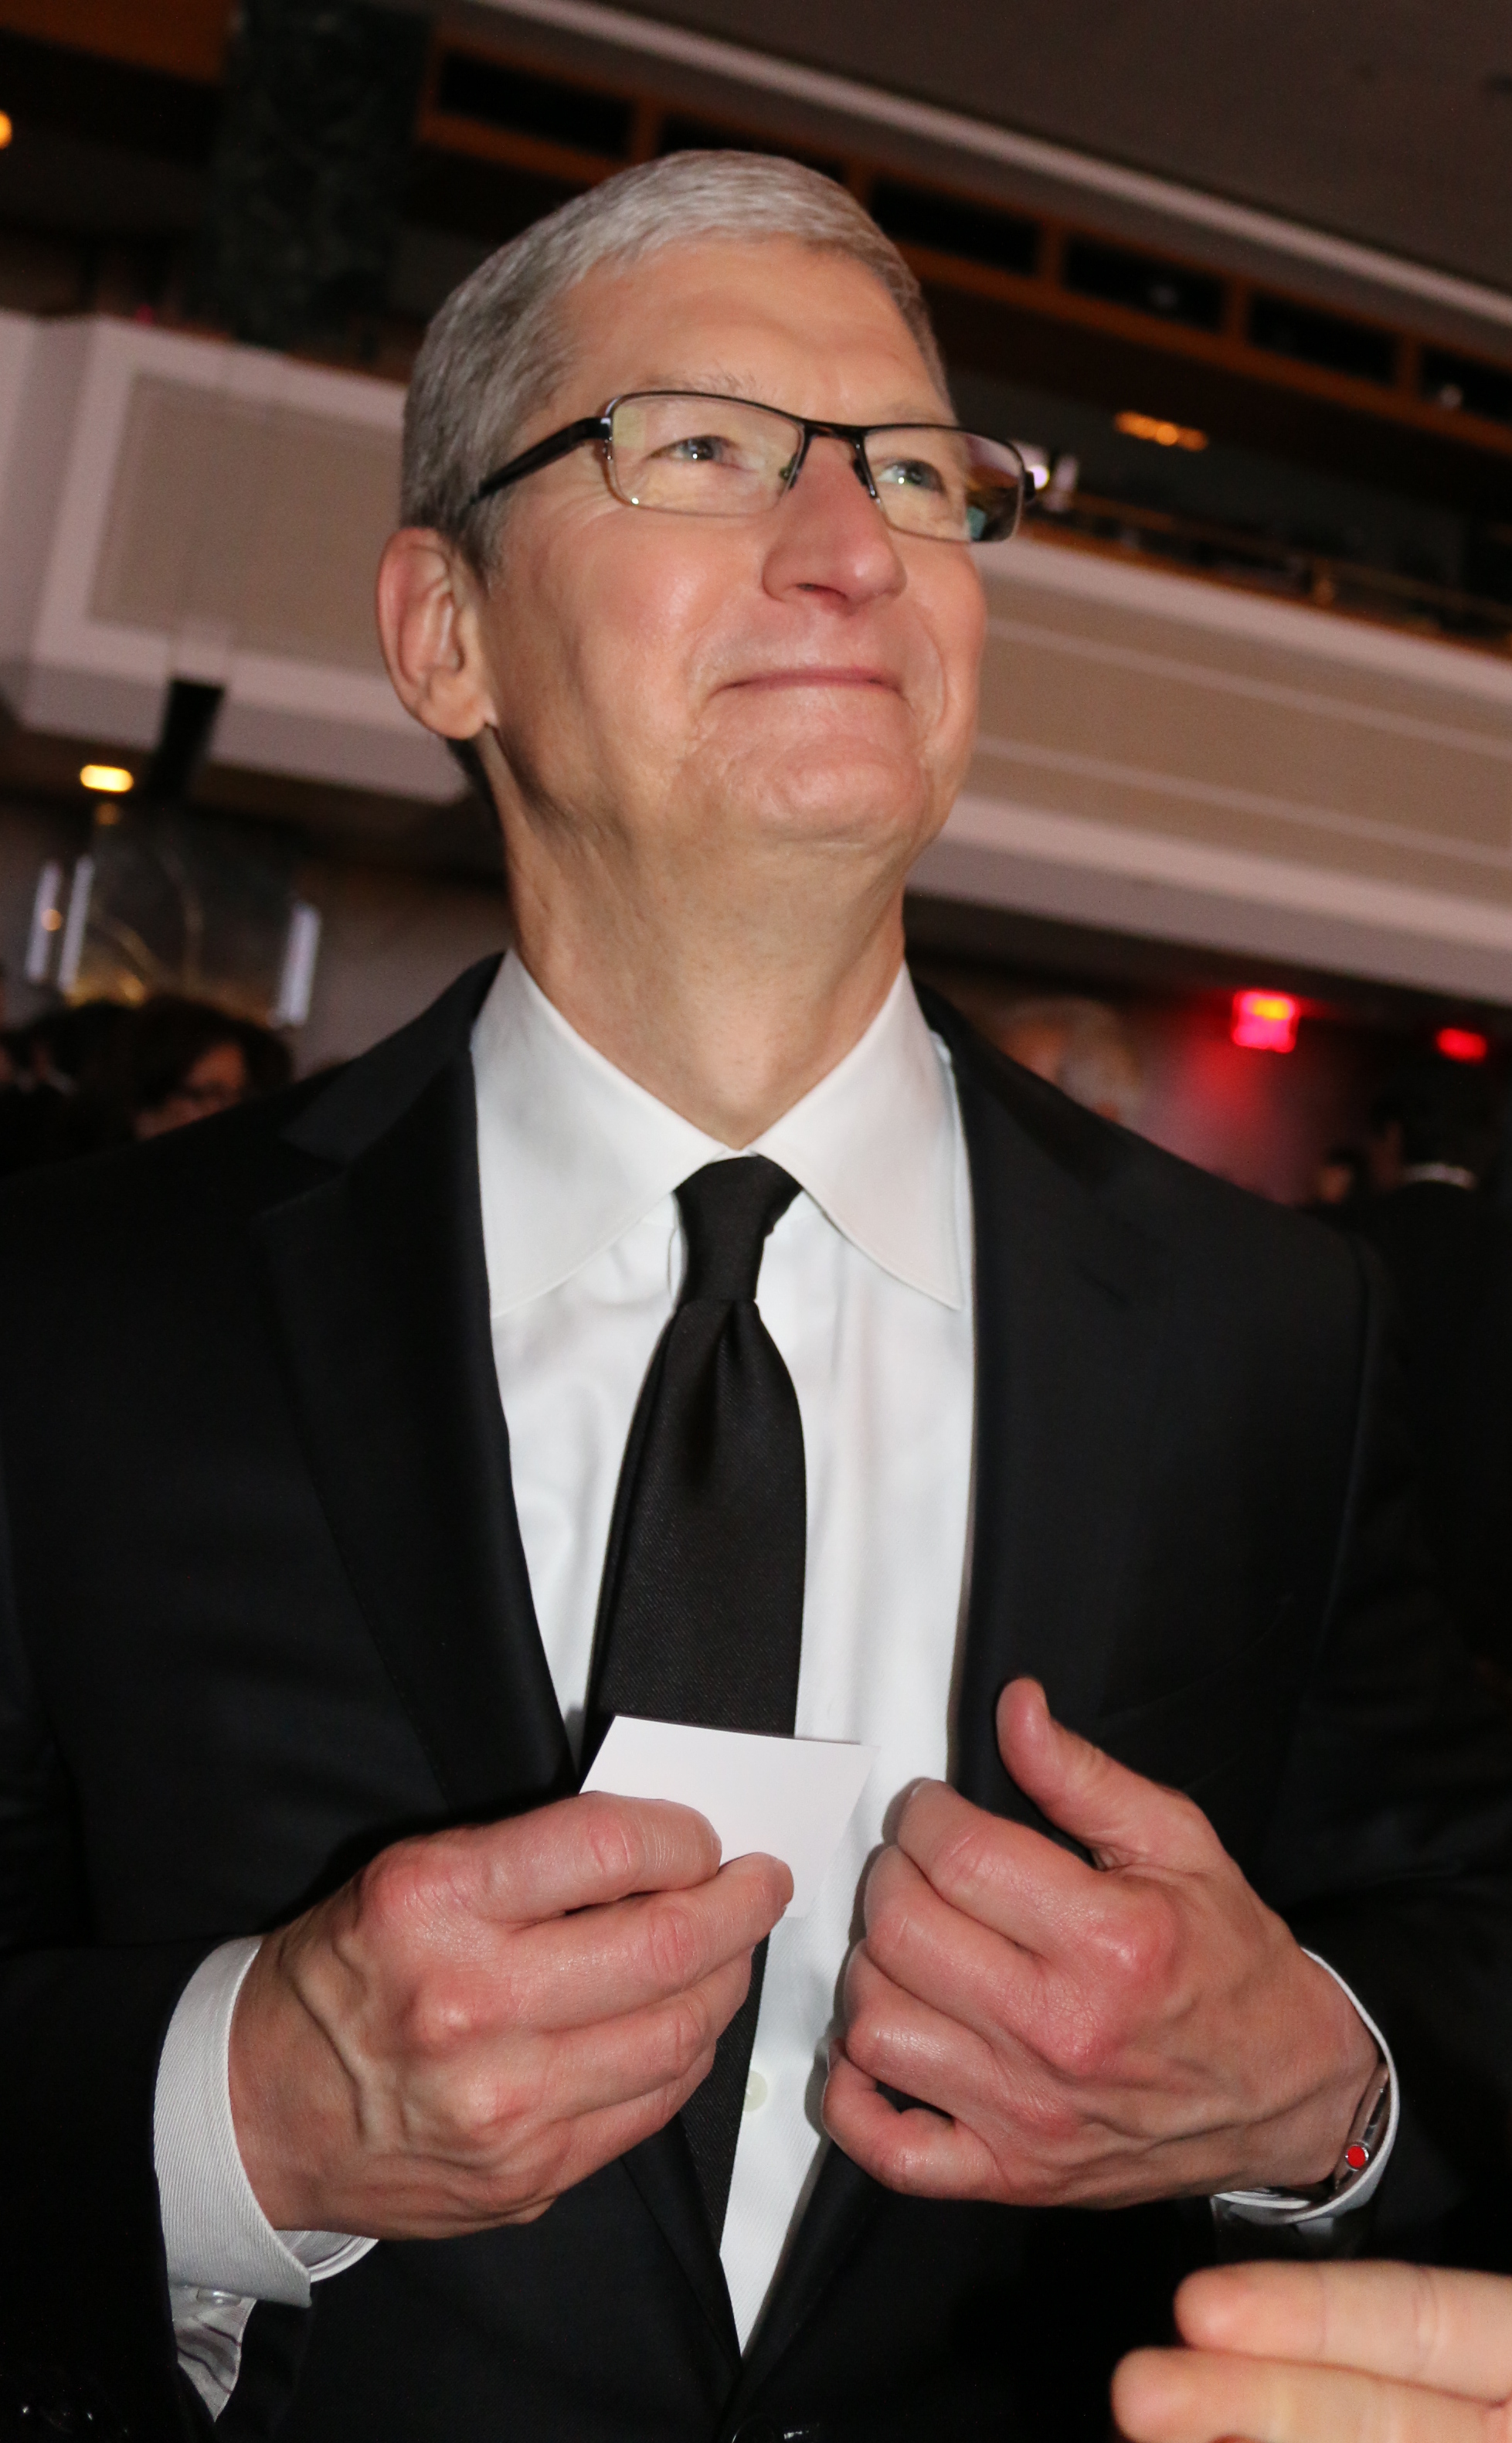 Robert F. Kennedy Human Rights 2015 Ripple Of Hope Awards at the New York Hilton - Inside                                    Featuring: Tim Cook                  Where: New York, New York, United States                  When: 08 Dec 2015                  Credit: IZZY/WENN.com